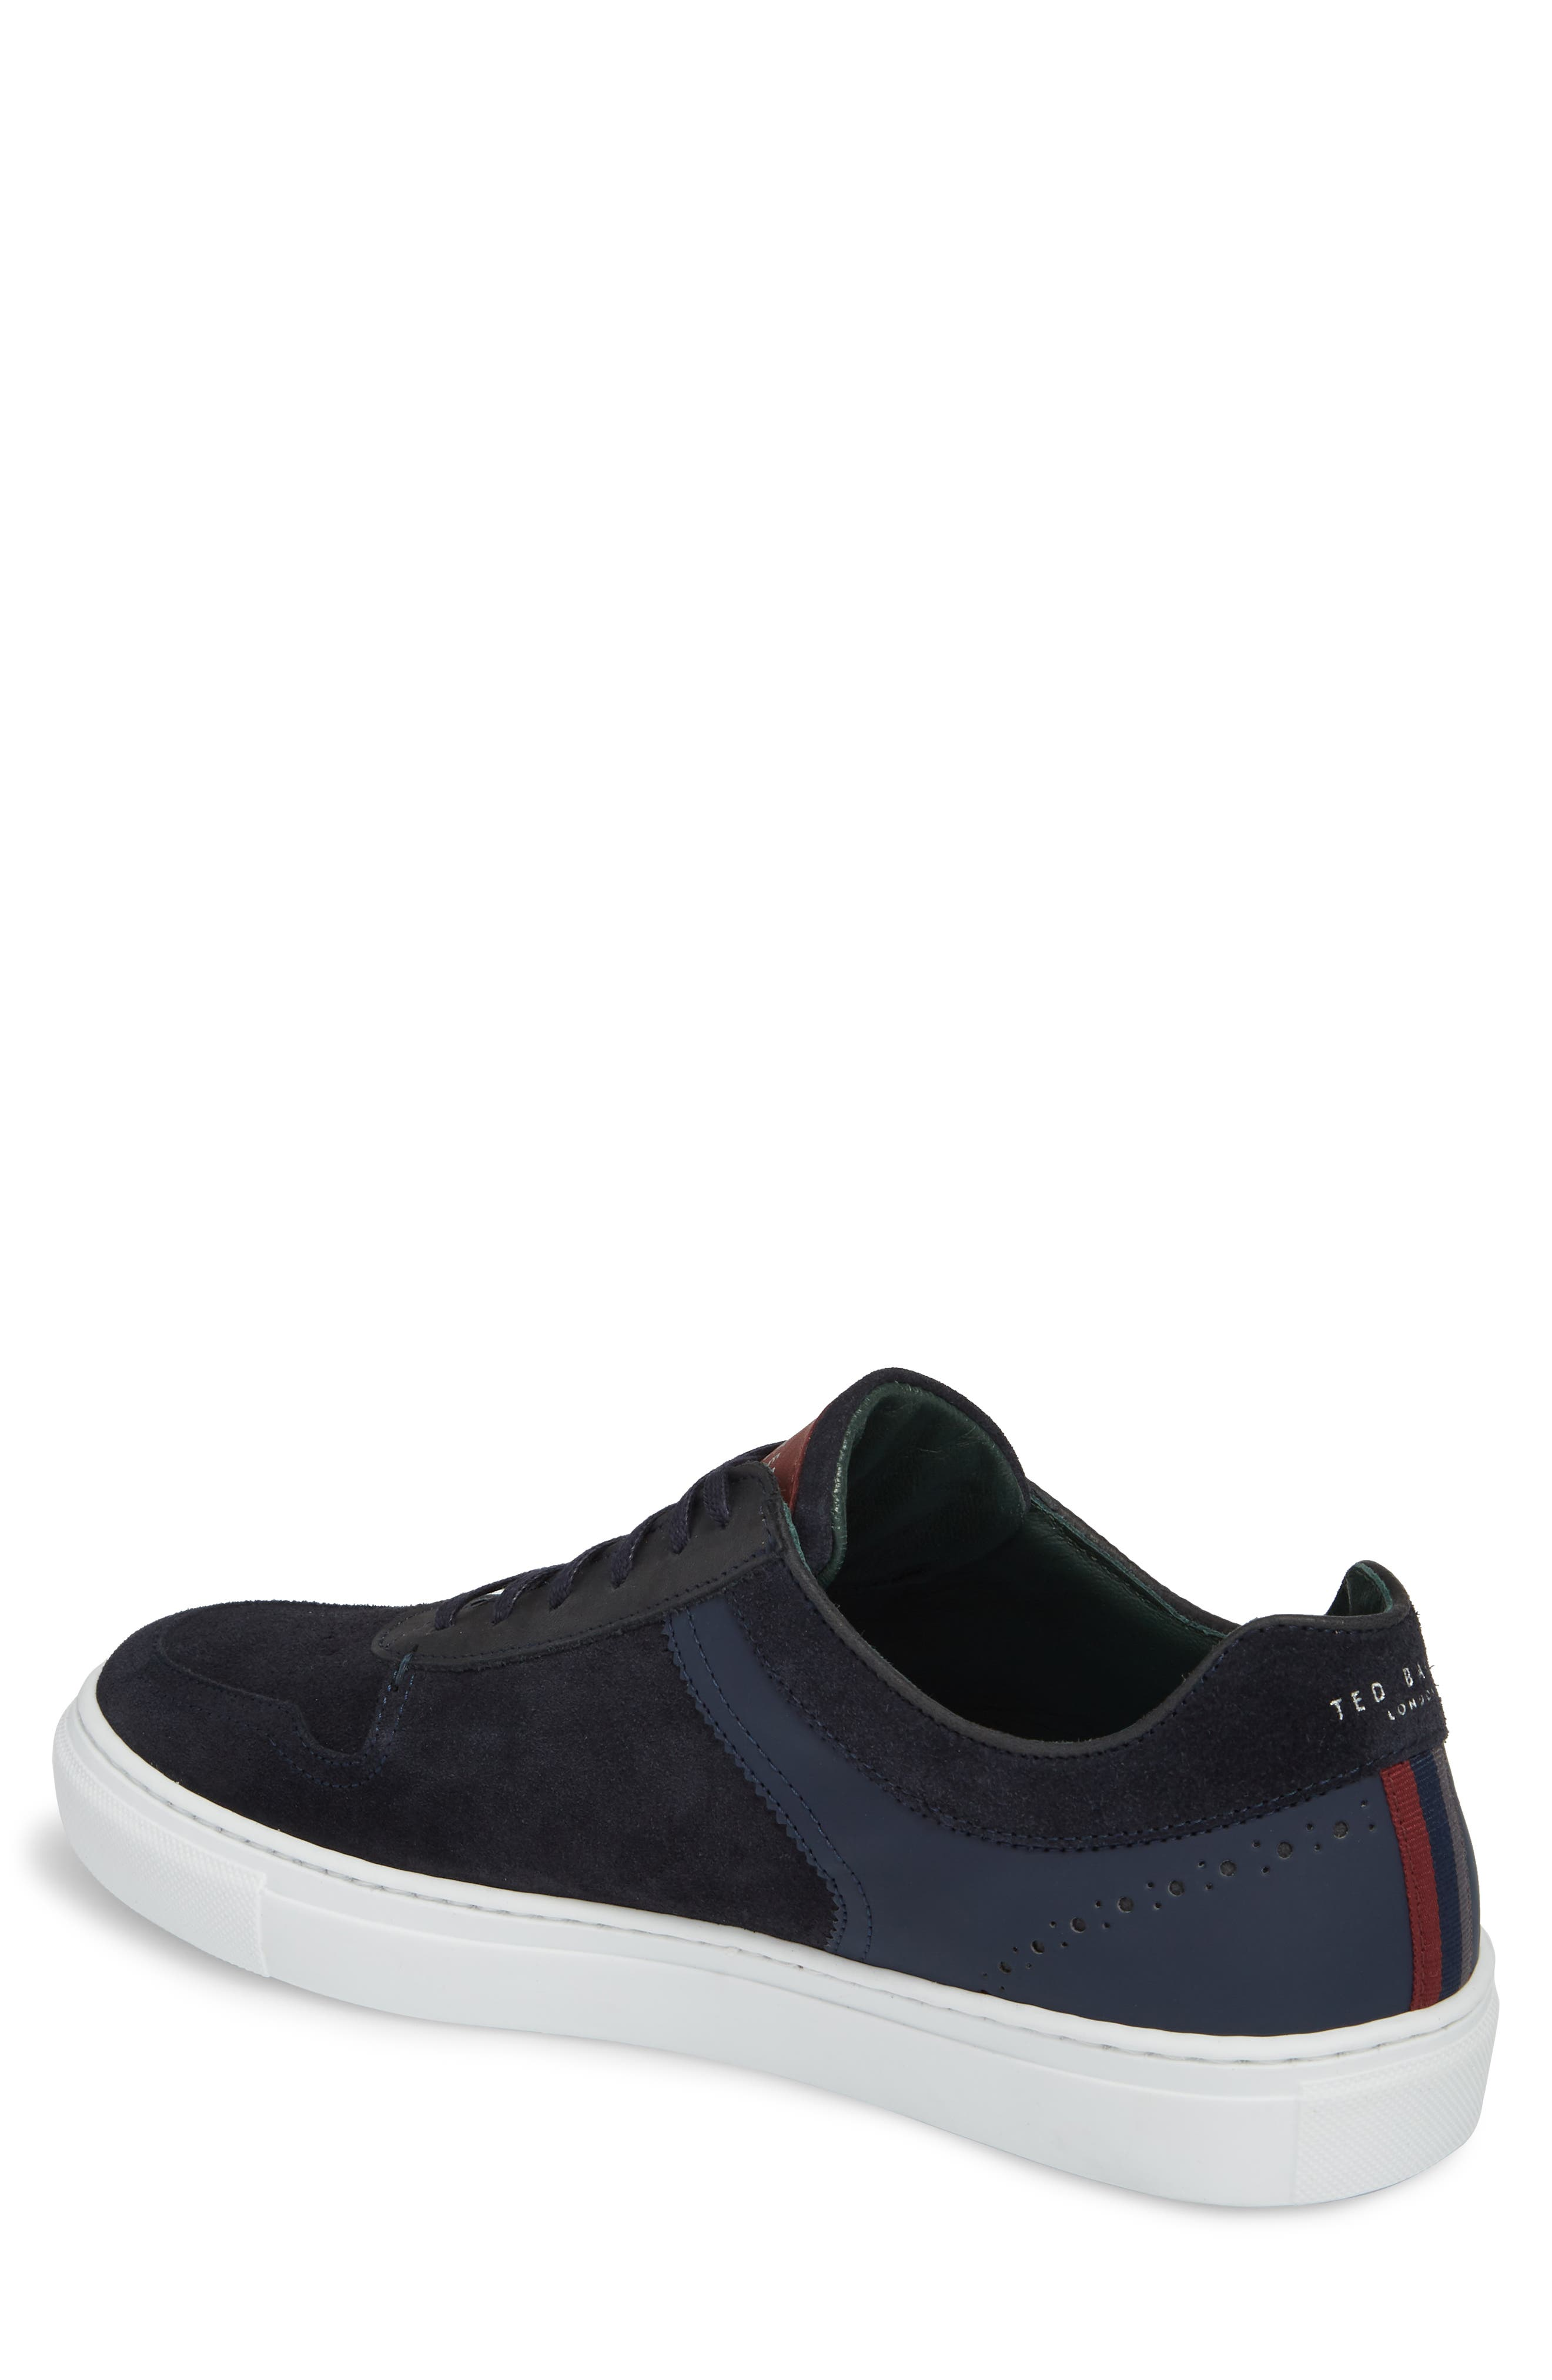 Burall Sneaker,                             Alternate thumbnail 2, color,                             Dark Blue Suede/ Textile